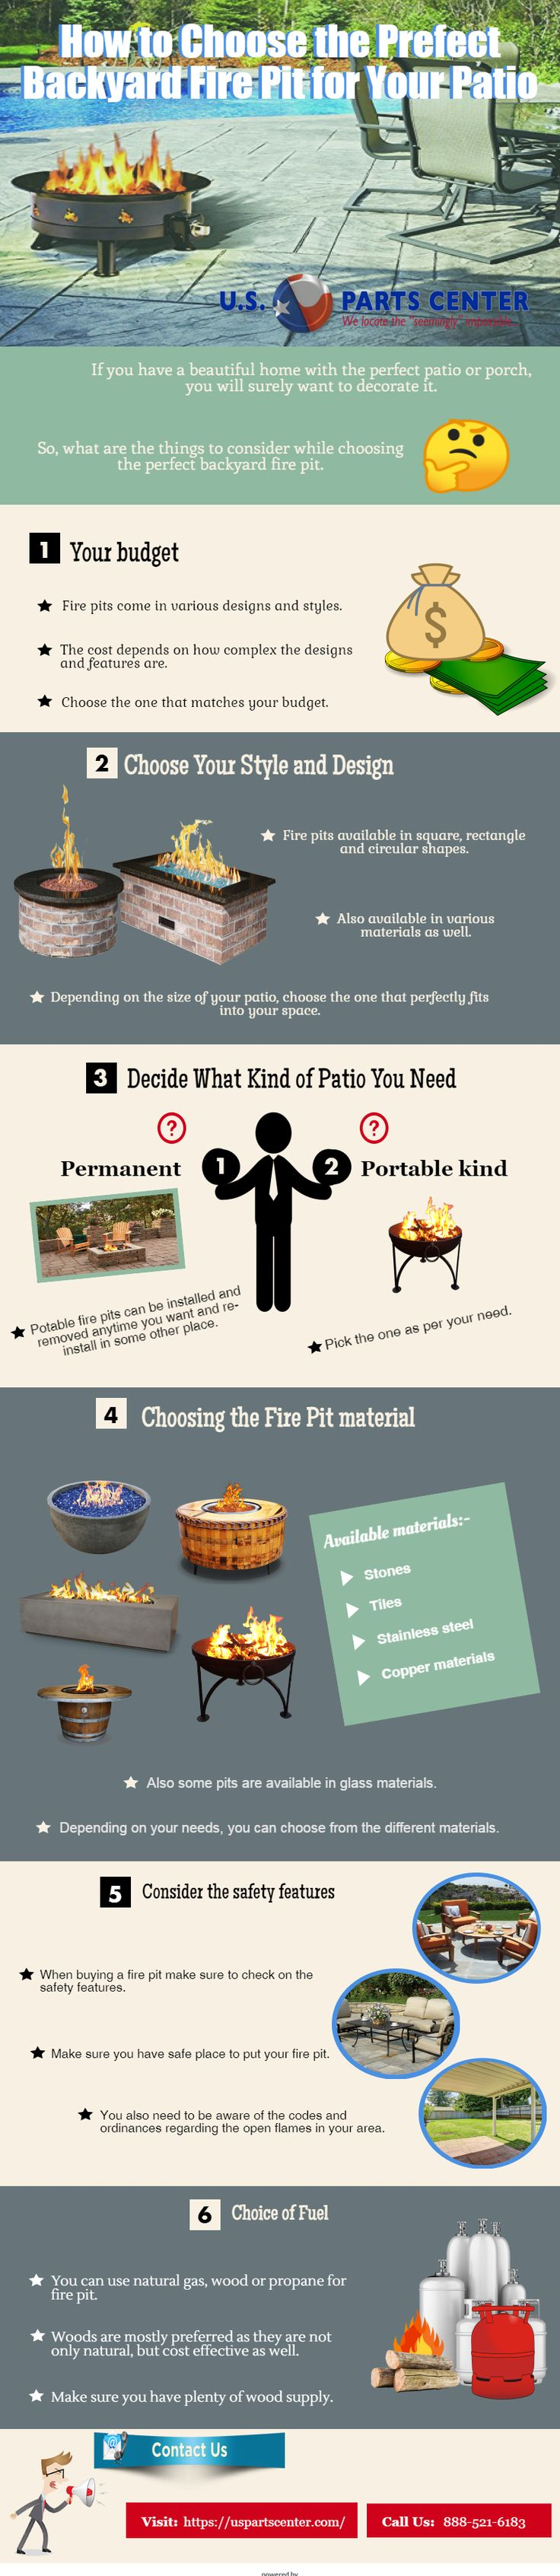 U.S Parts Centre offers a wide selection of backyard fire pit for sale from the best manufacturers. Here are few tips on how to choose the perfect backyard fire pit for your patio. Let's have a look!